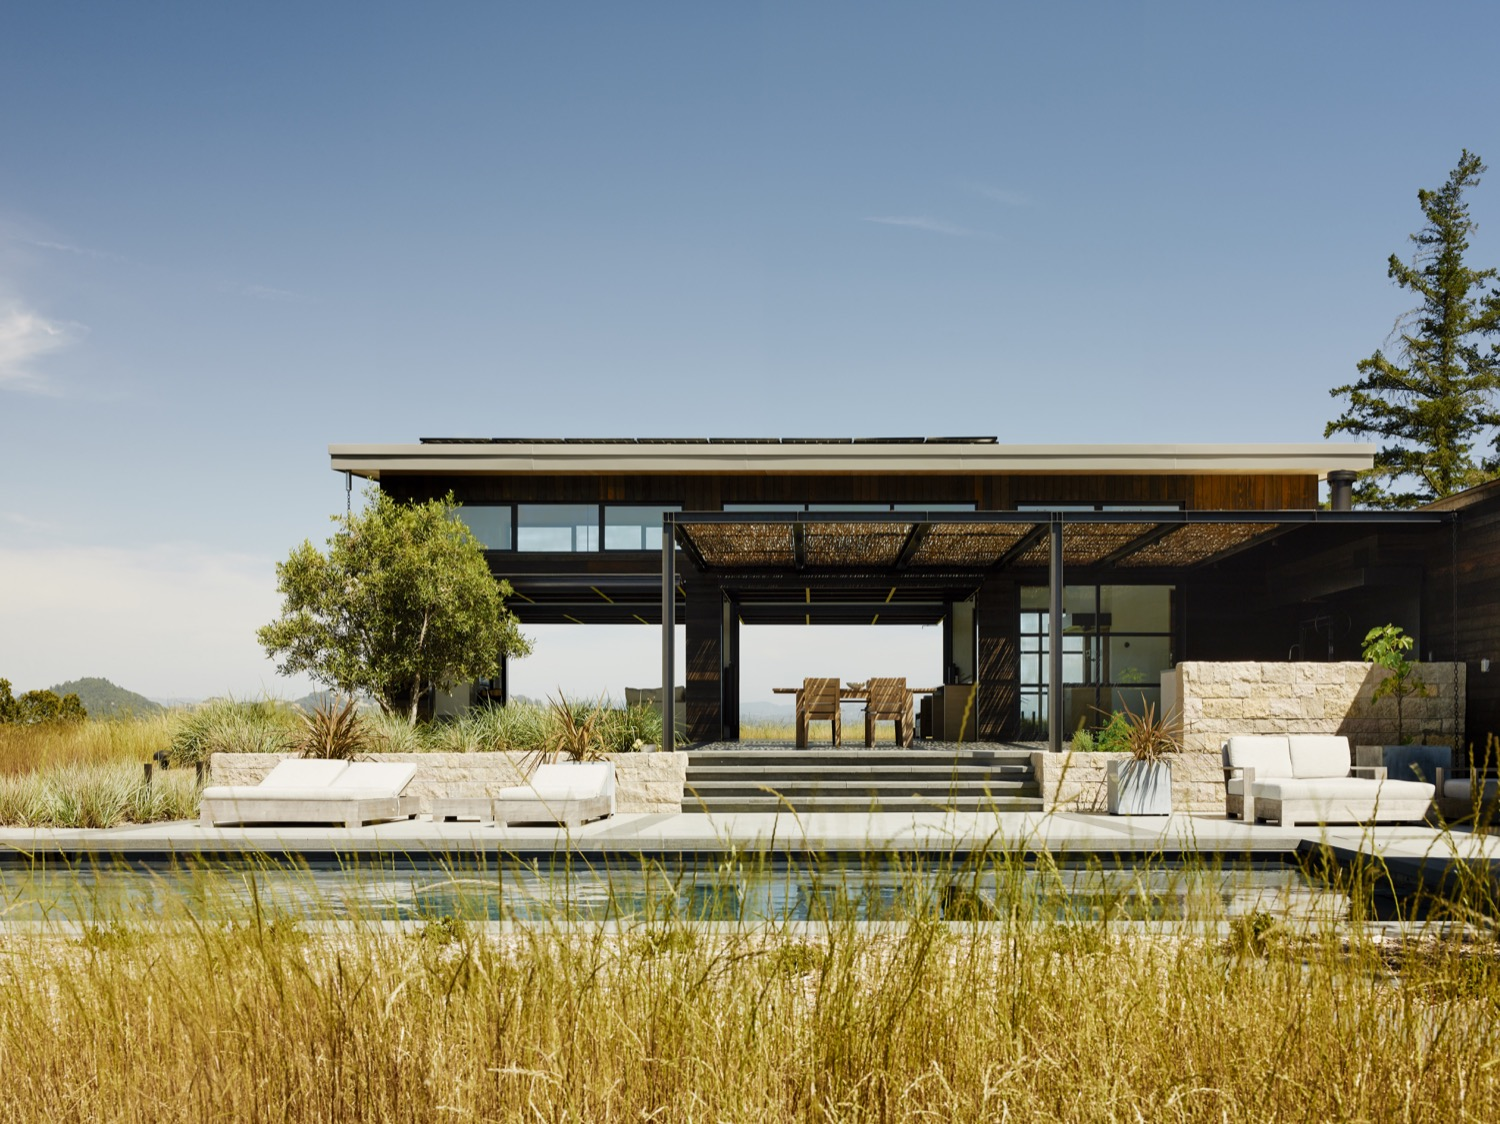 The pavilion-like living room opens up to the outdoor dining and pool